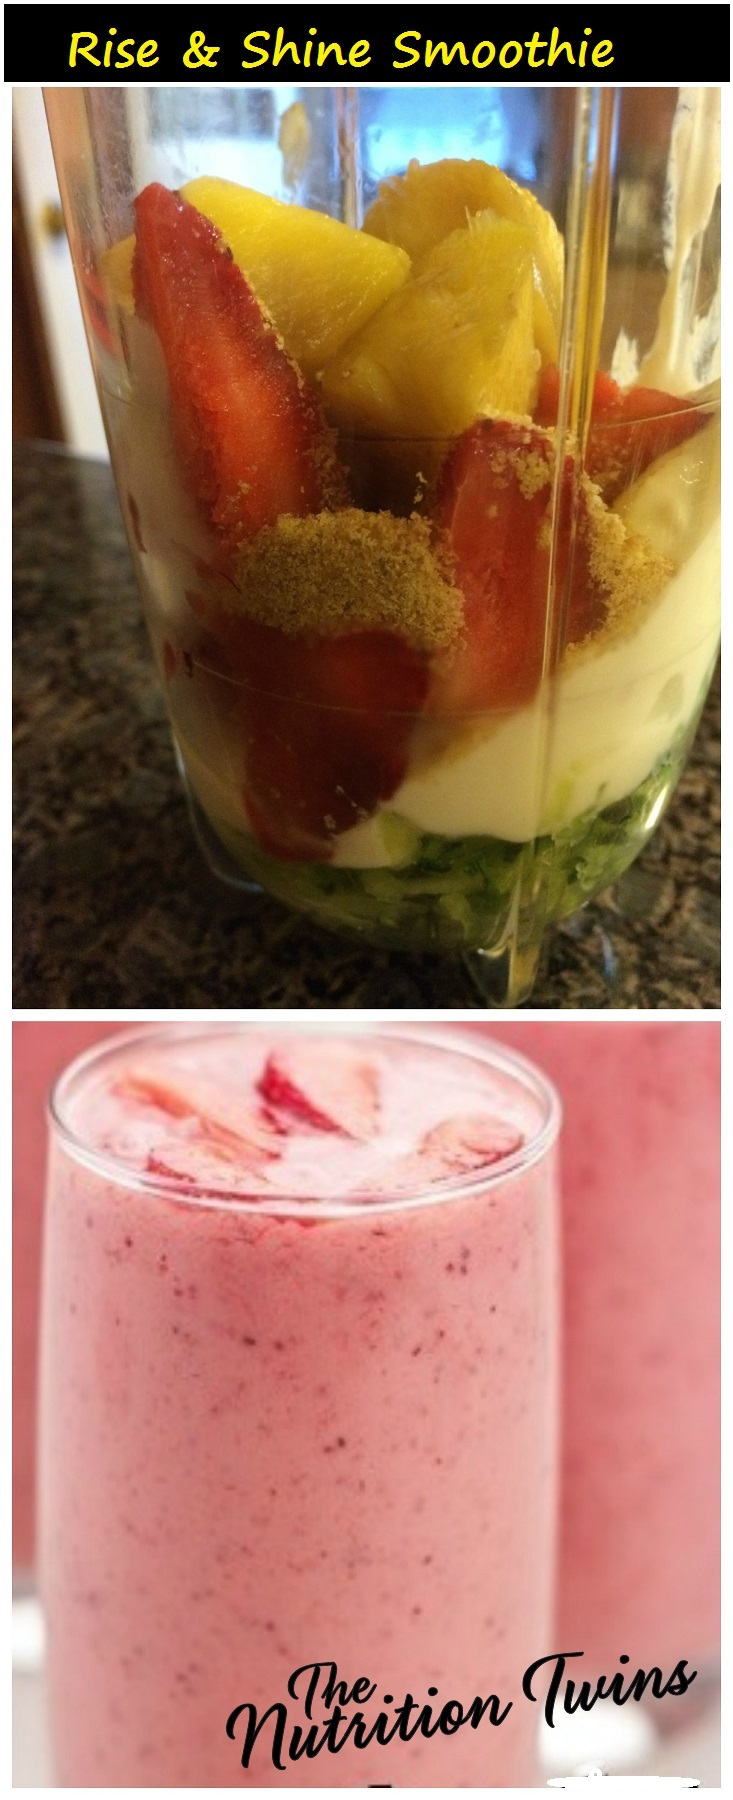 Rise_&Shine_Nutritious_smoothie_2collage